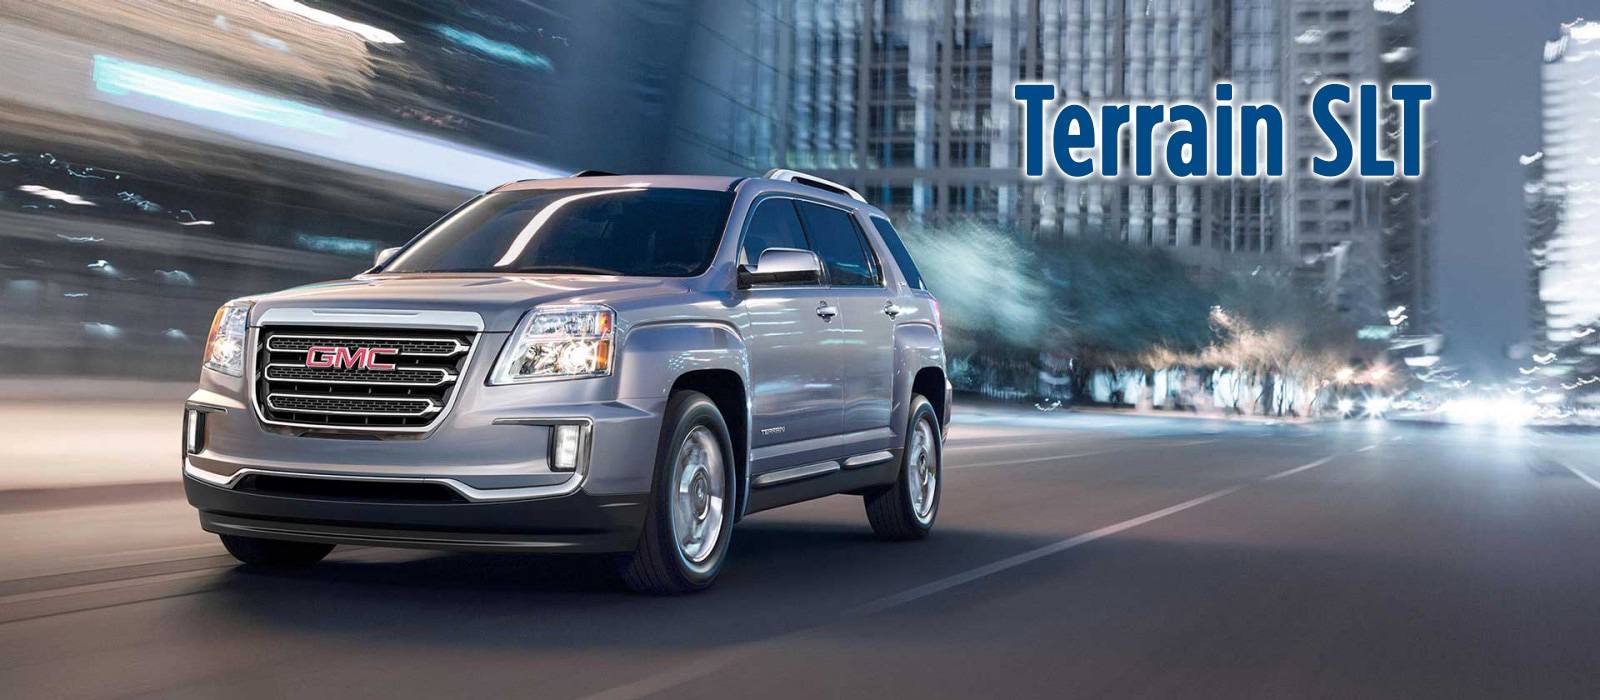 Silver GMC Terrain SLT Front Angle